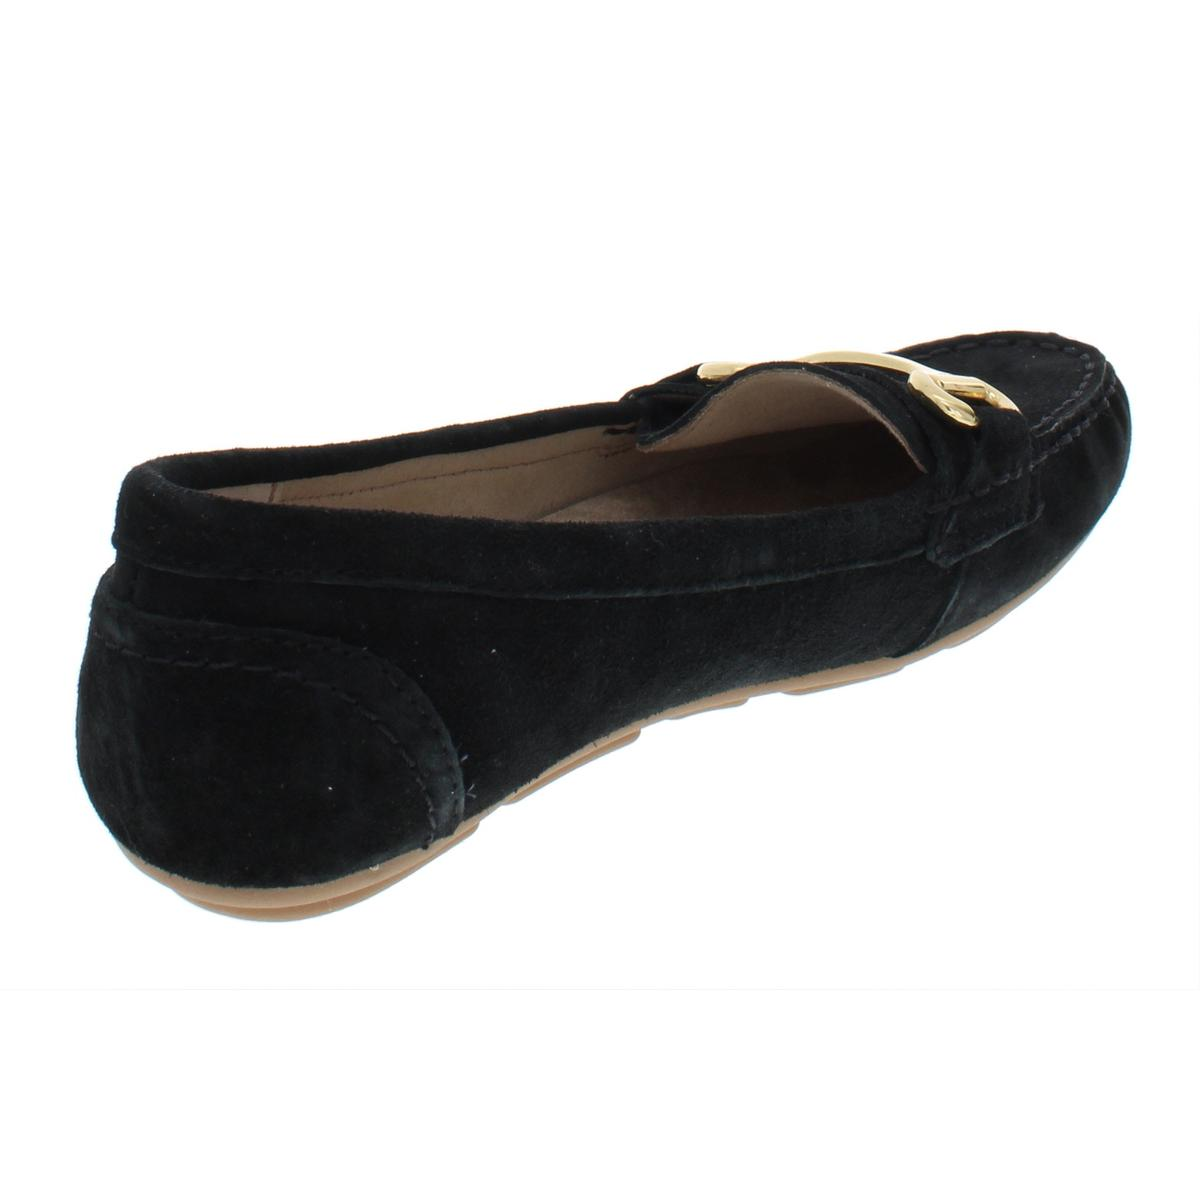 White-Mountain-Womens-Scotch-Padded-Insole-Dress-Moccasins-Shoes-BHFO-3287 thumbnail 4